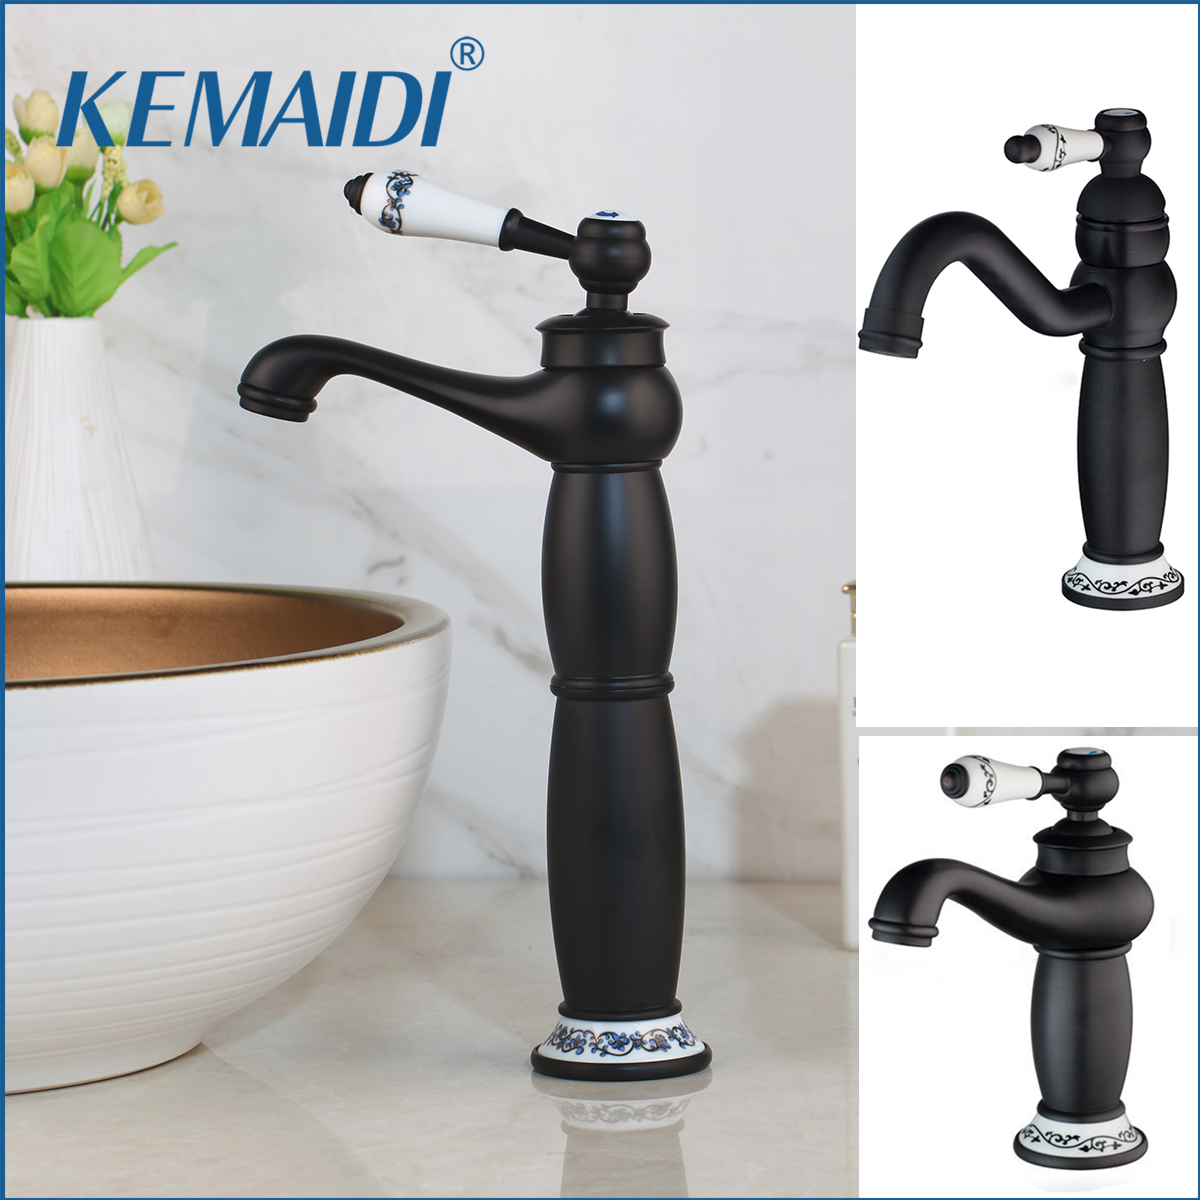 KEMAIDI Single Handle Bathroom Basin Faucets Cold/Hot Mixer Basin Sink Tap Black Water Kitchen Faucet Bathroom Accessories